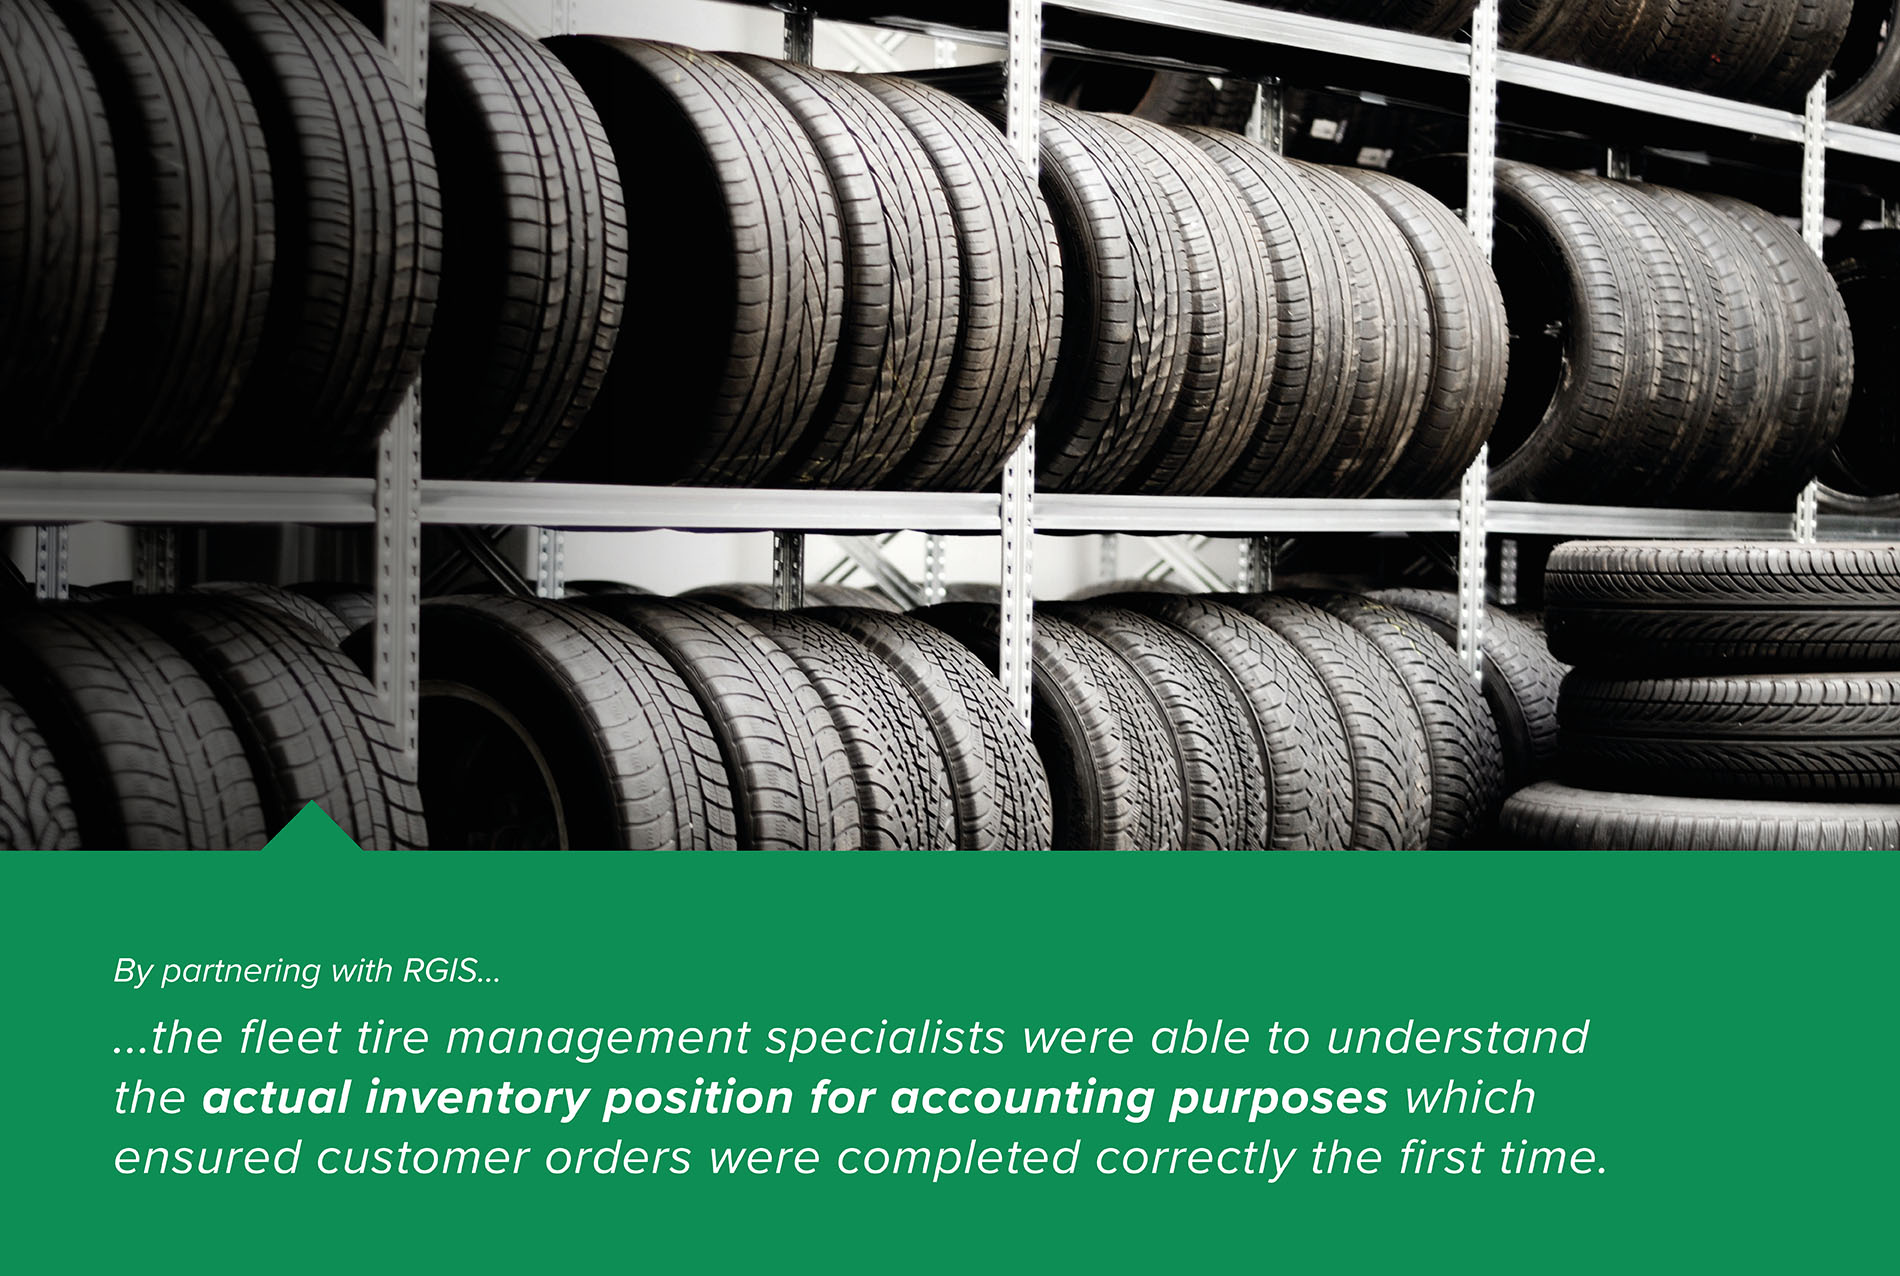 Tire Audit to Eliminate Inventory Inconsistencies